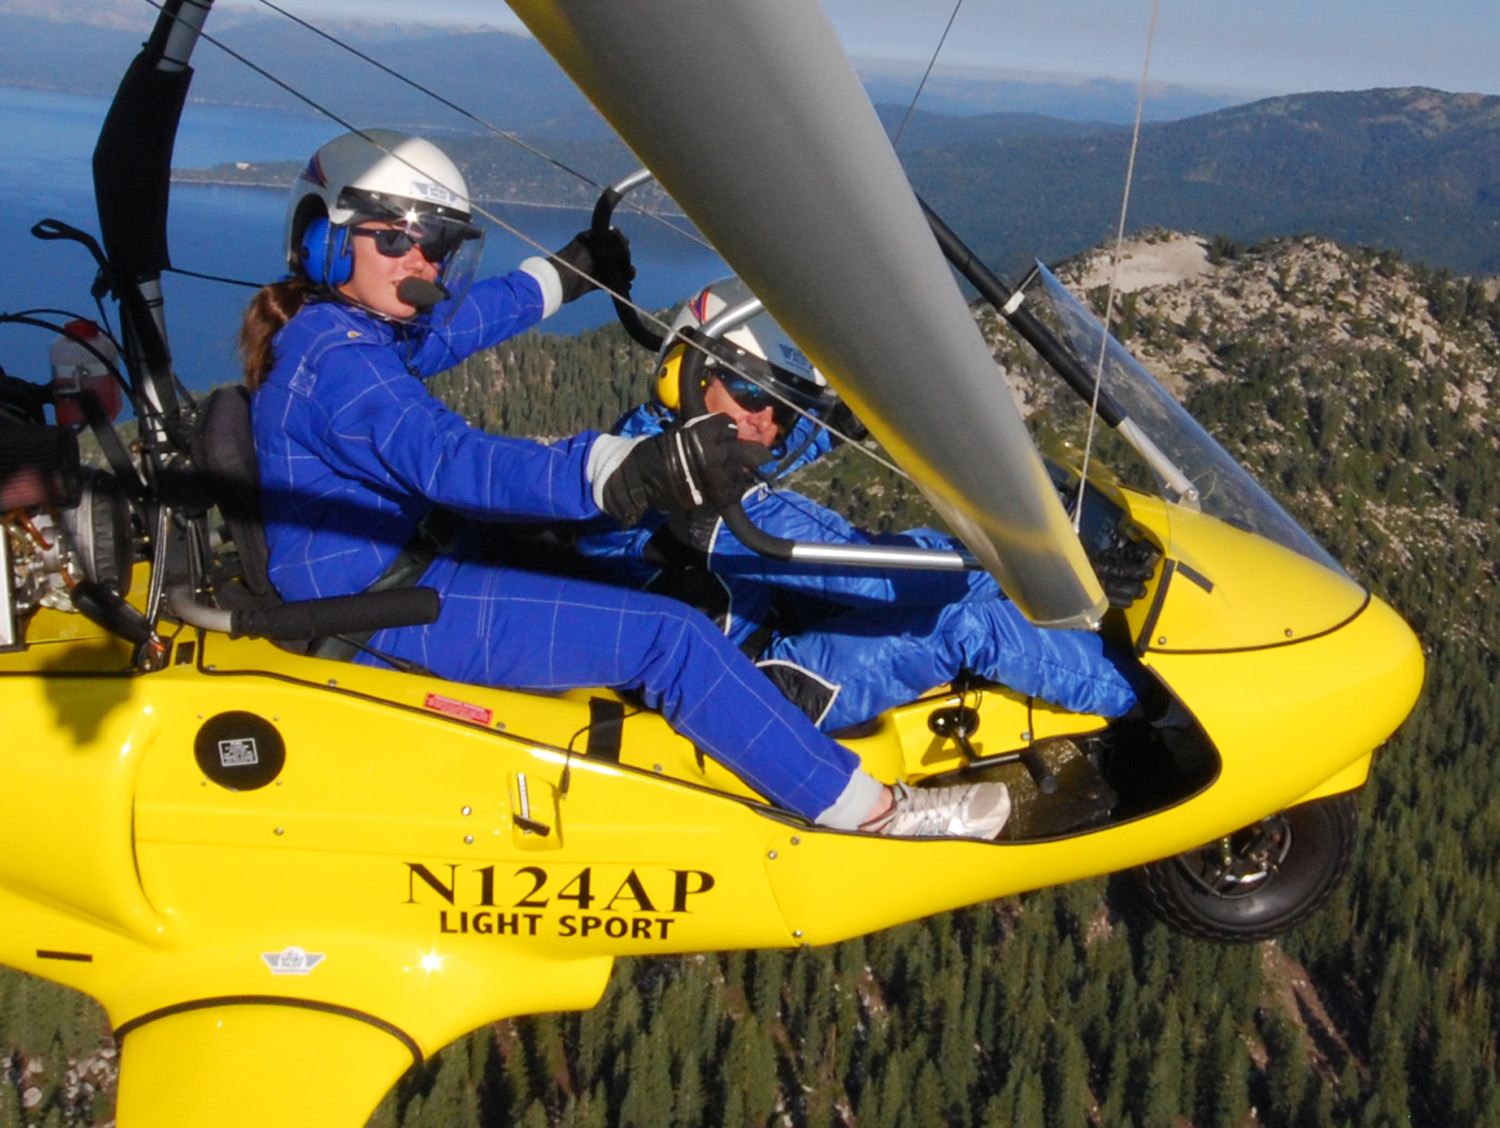 Student at controls flying powered hang glider above Lake-Tahoe, Hang Gliding Tahoe